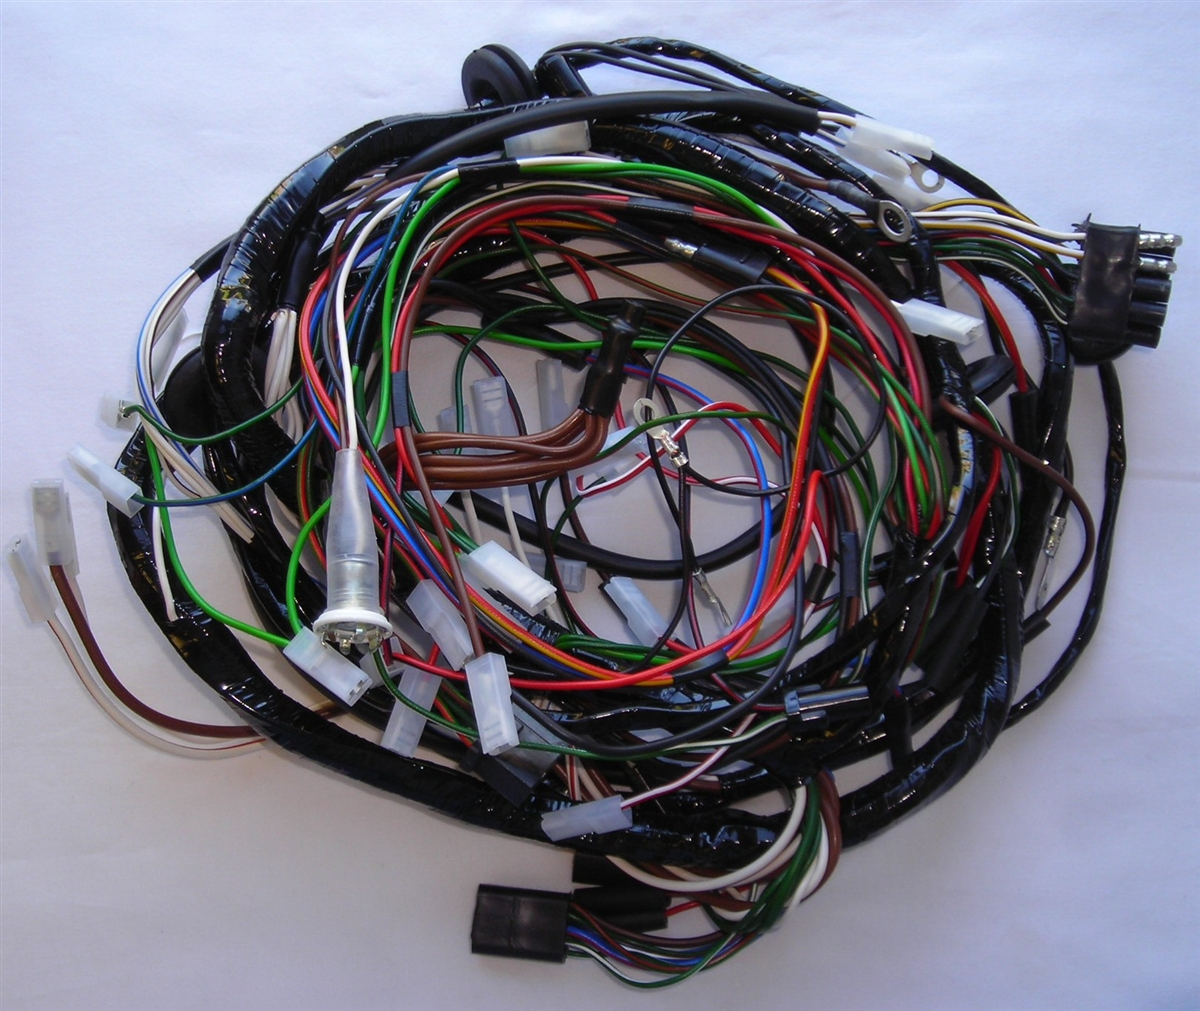 medium resolution of land rover series 3 main wiring harness land rover defender wiring harness rover wiring harness